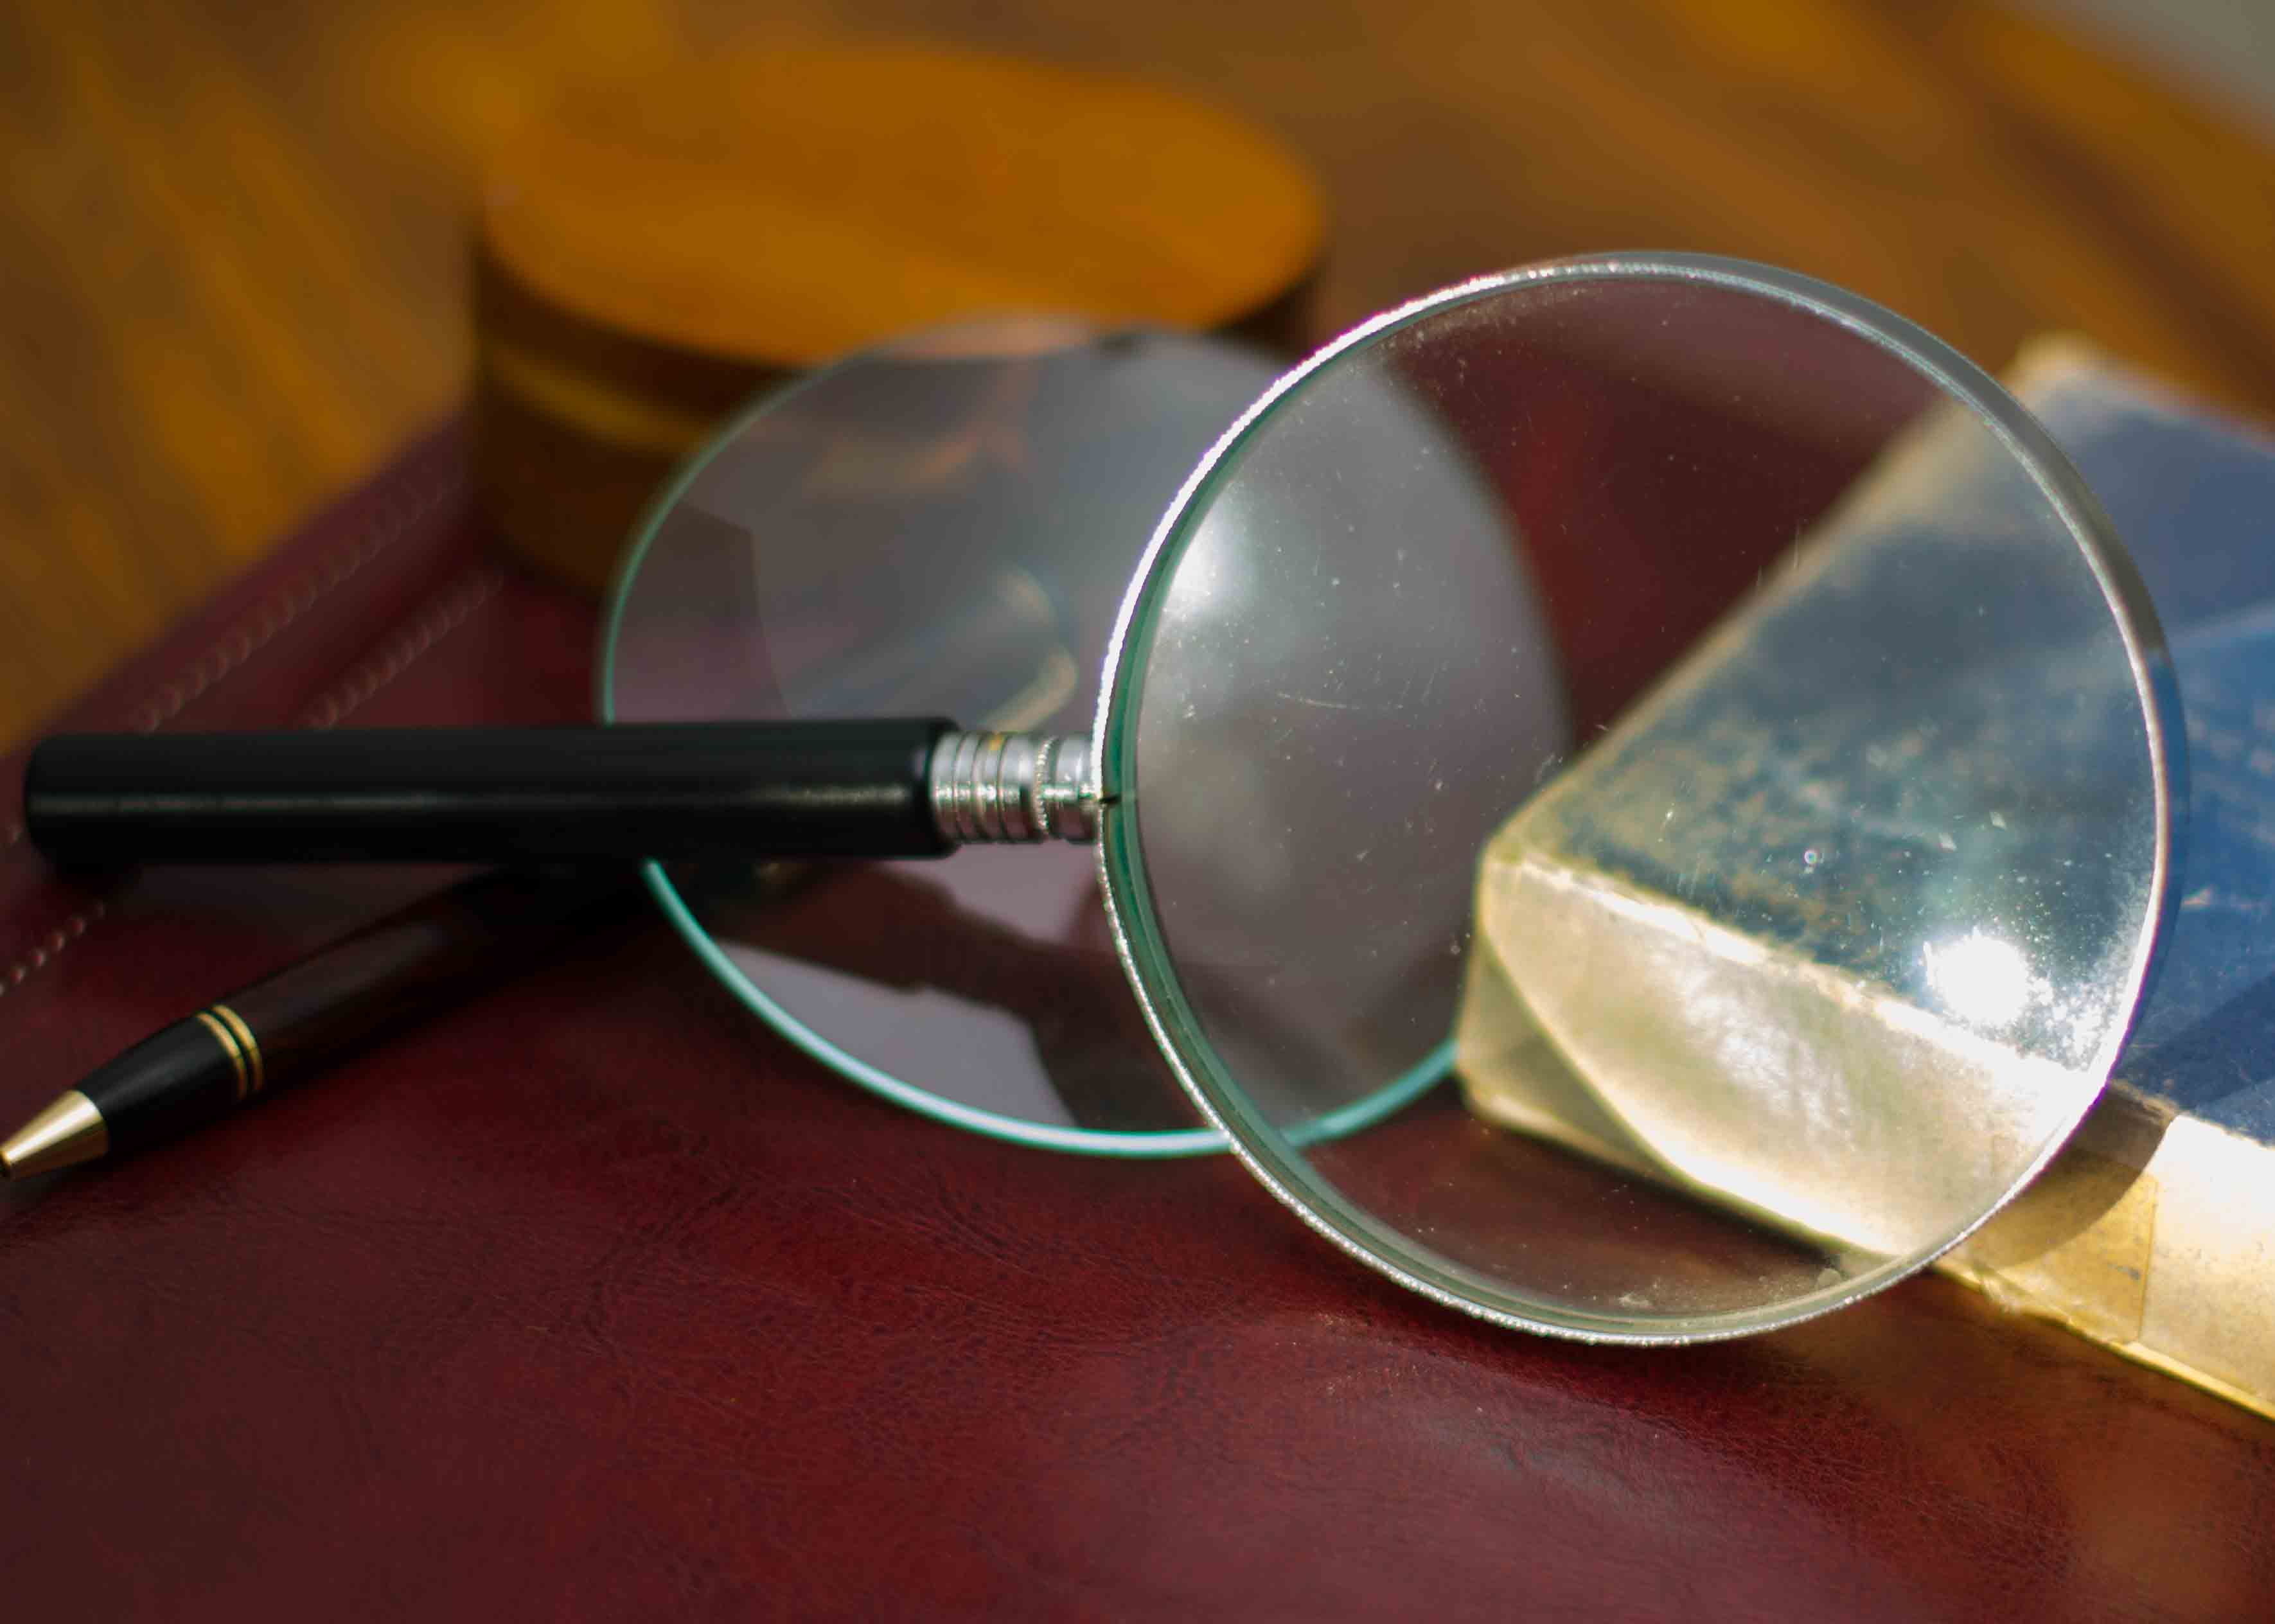 An image of a magnifying glass.